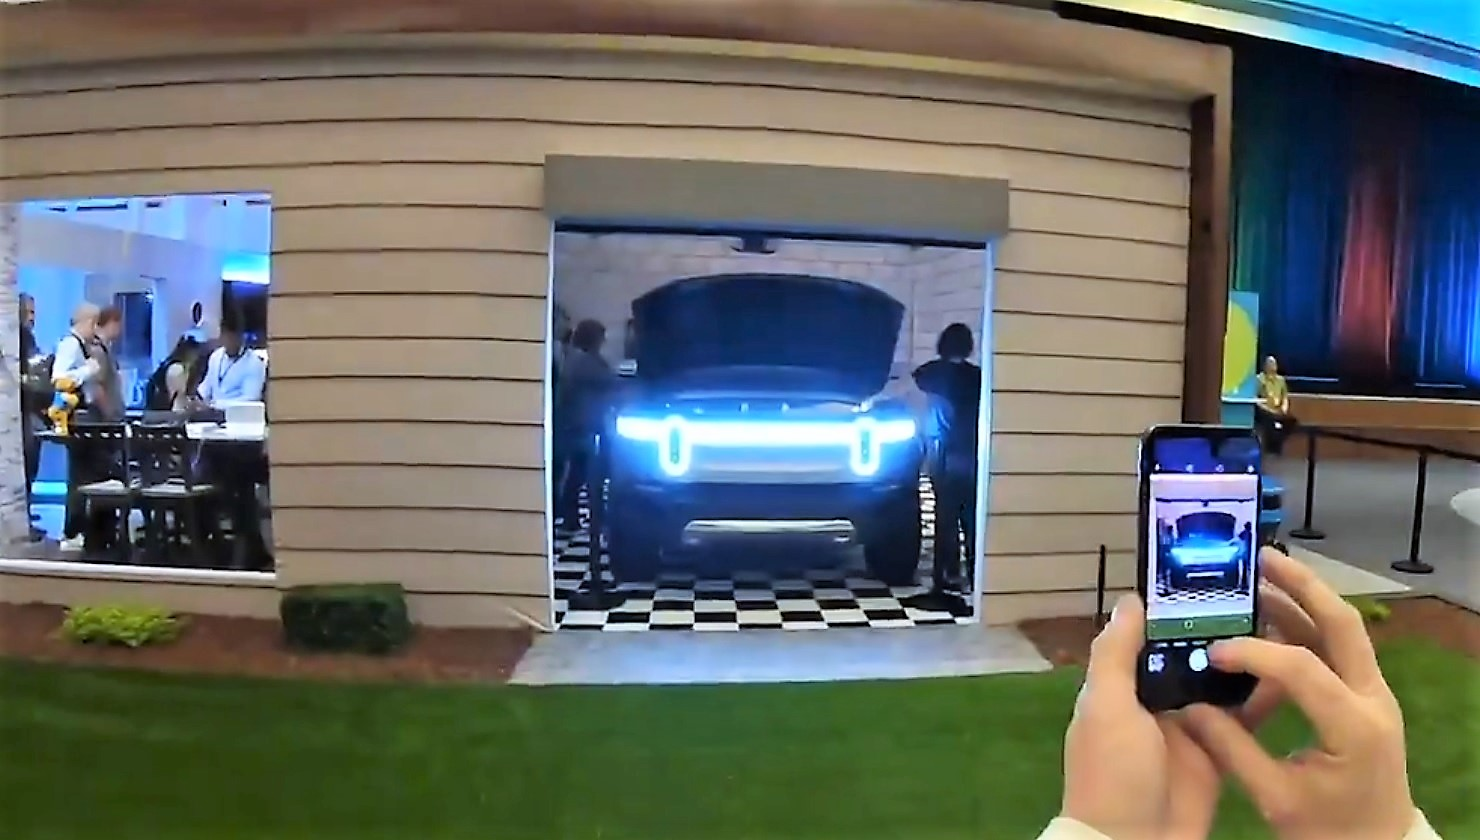 Rivian's full self-driving suite is designed to ignore an inattentive driver's input